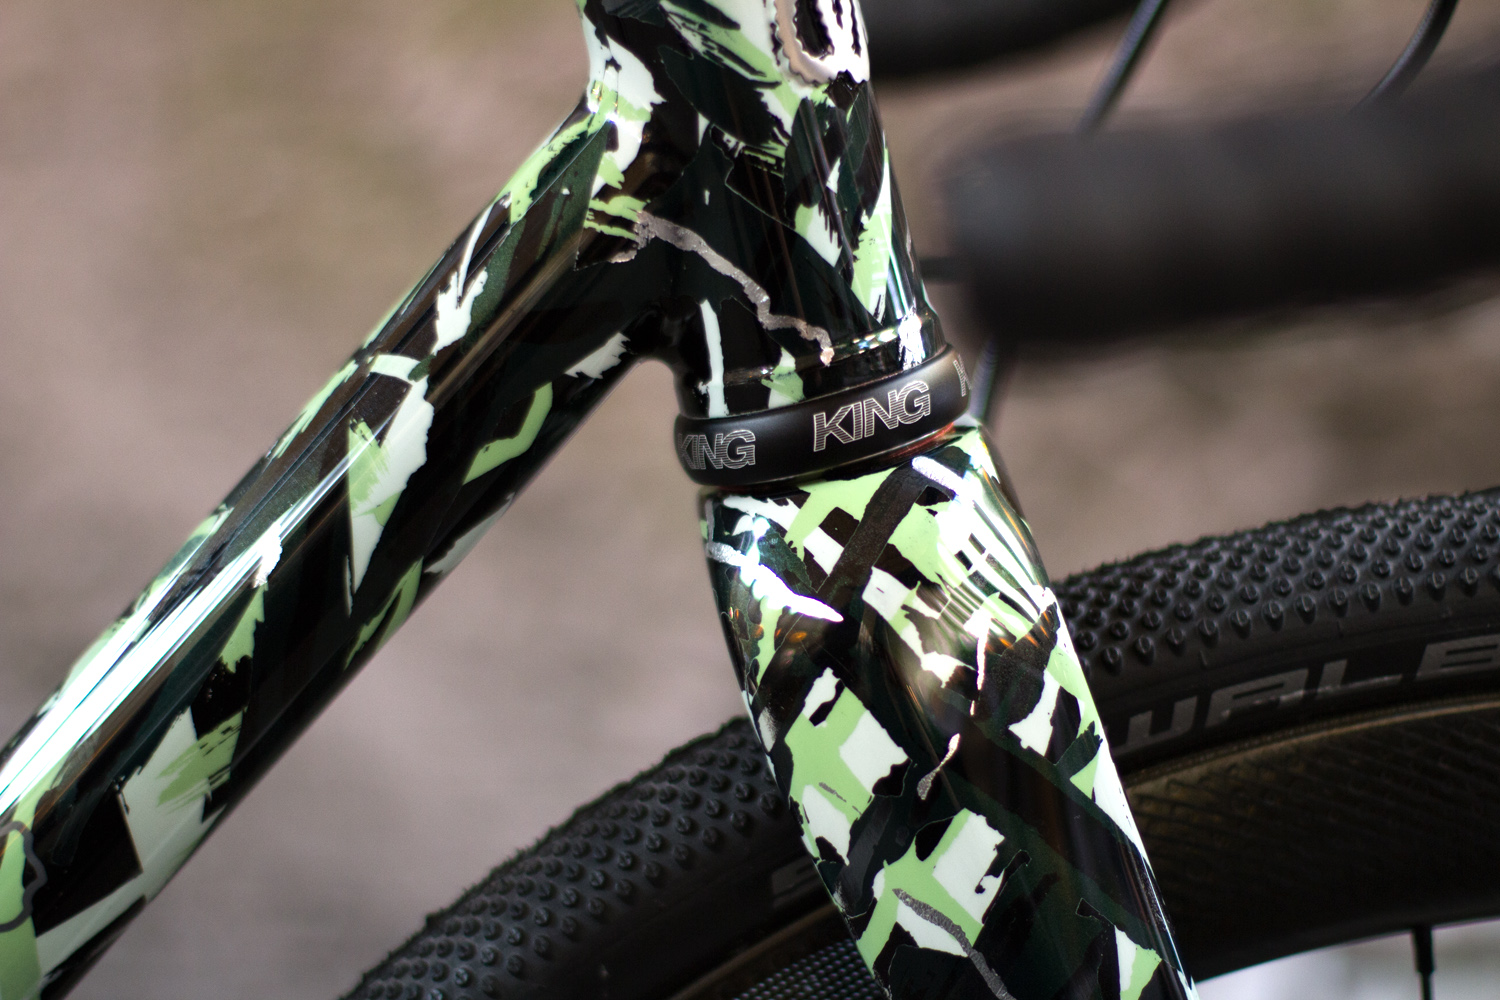 quirk_cycles_sram_bespoked_build_01.jpg